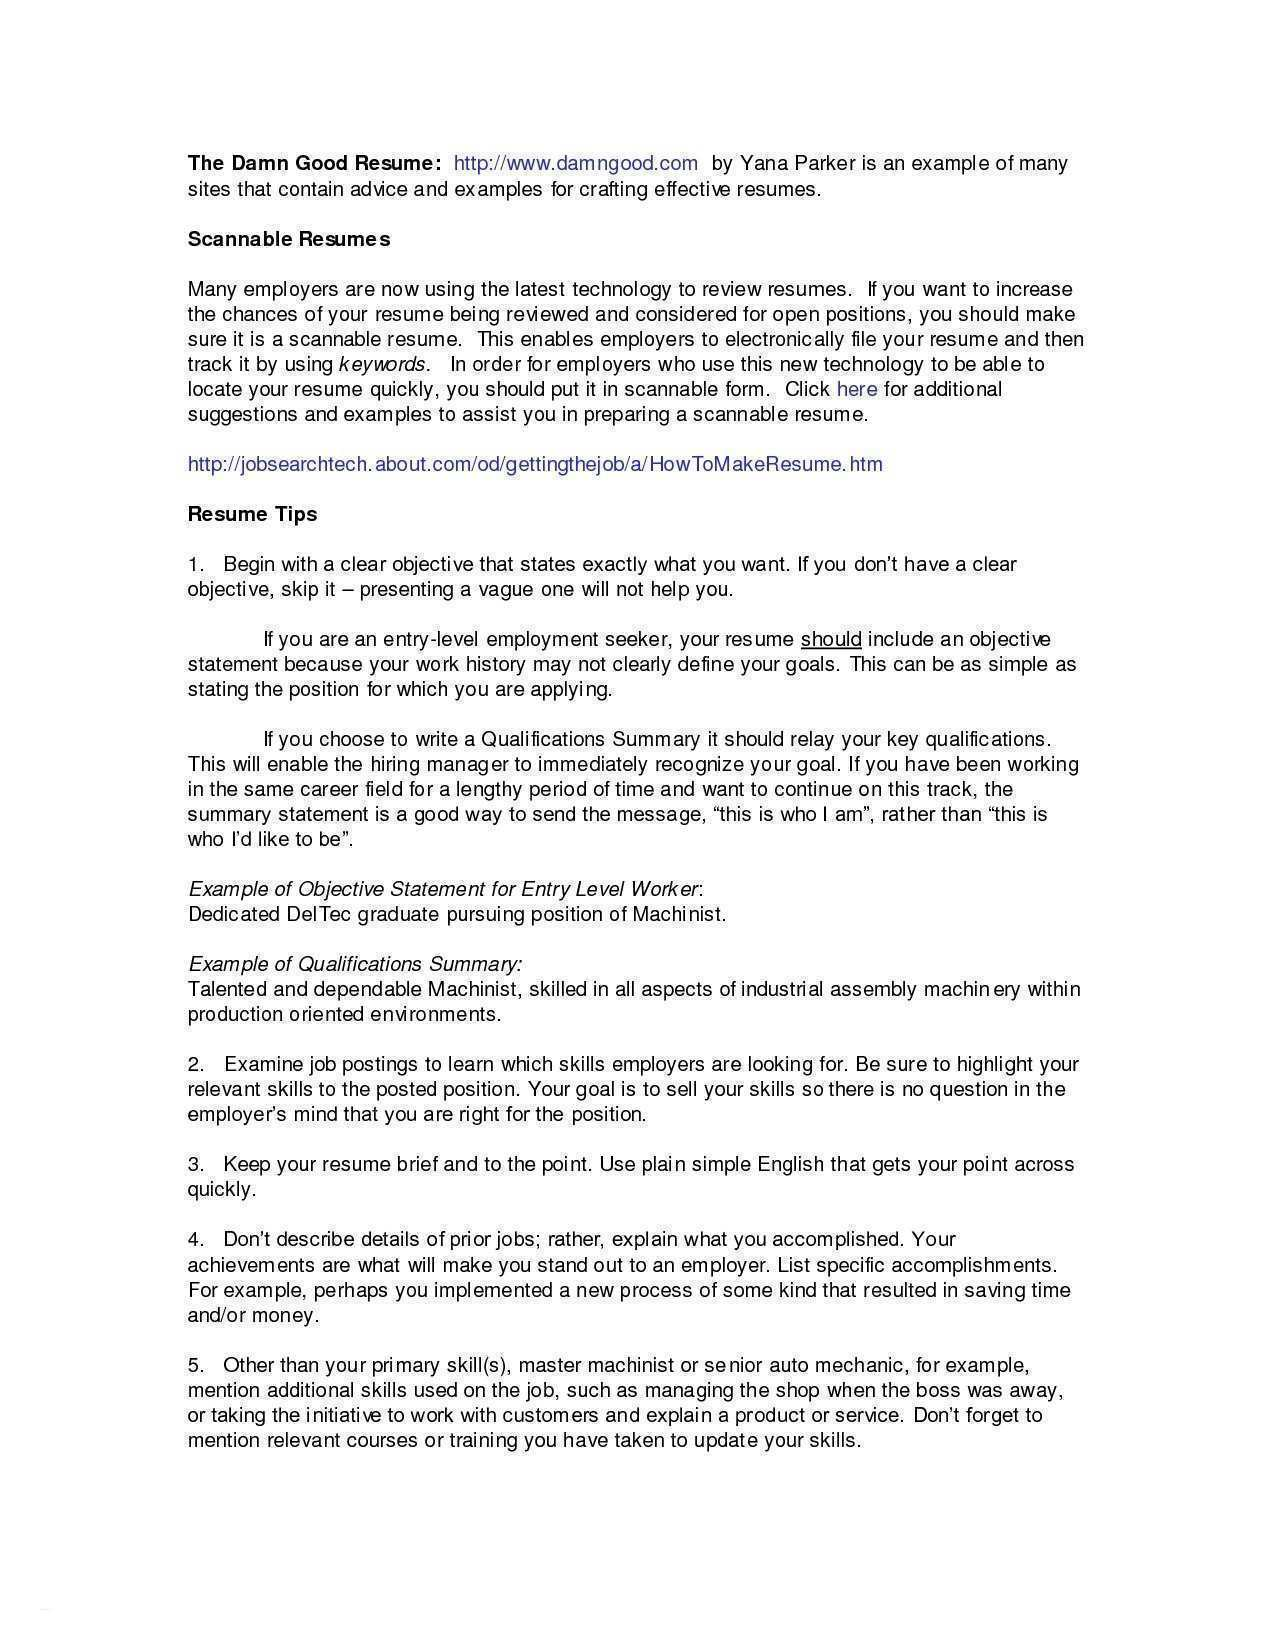 How To Make A Summary For A Resume cover letter example of